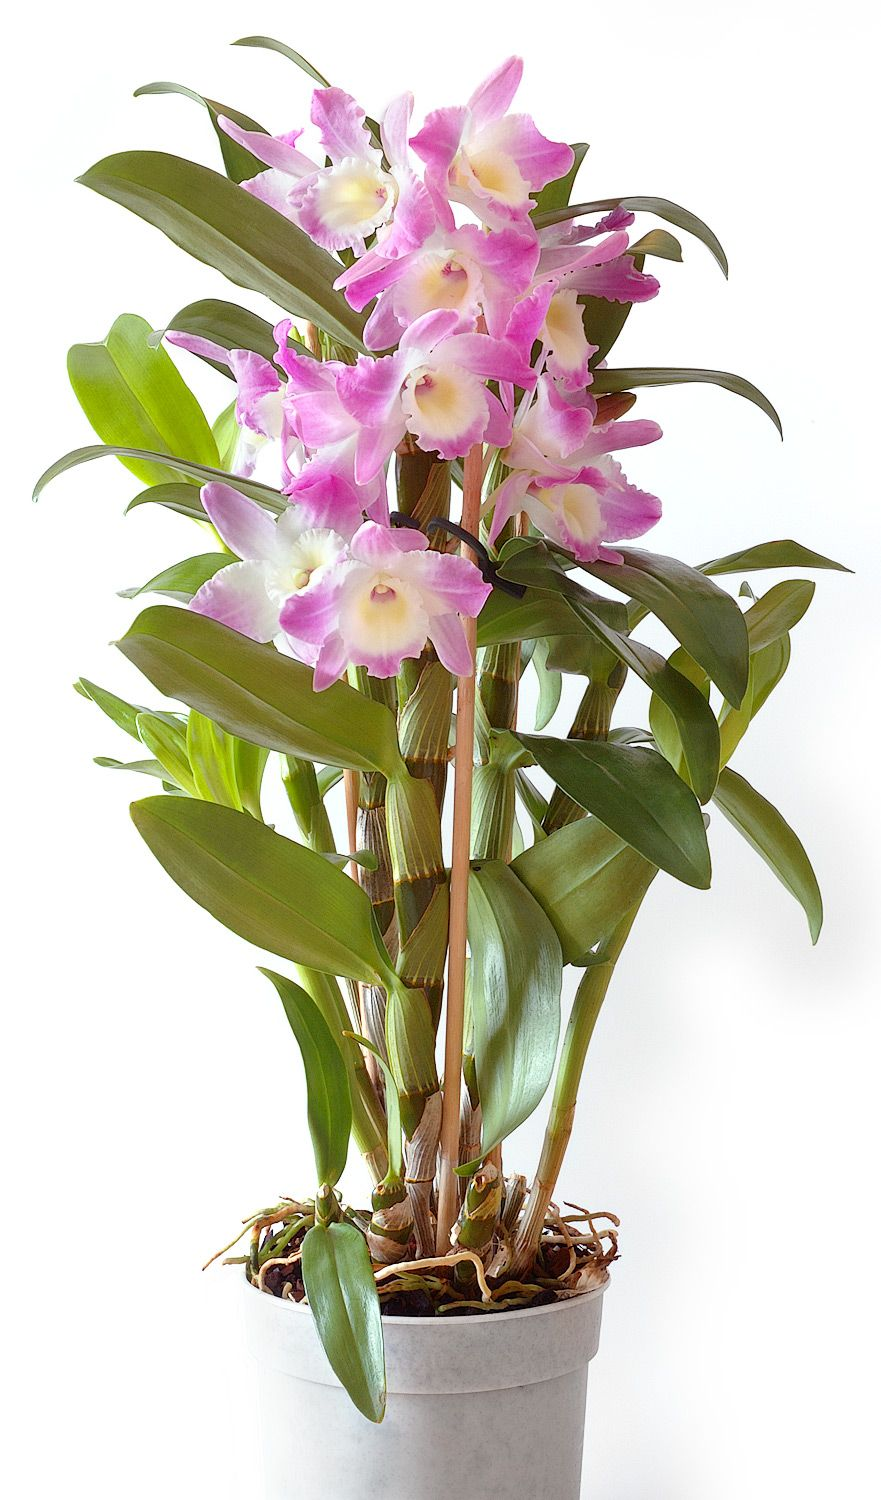 Dendrobium Ile Orchids Types Some Have Pseudo Bulbs Roots And Others Only Joined Them